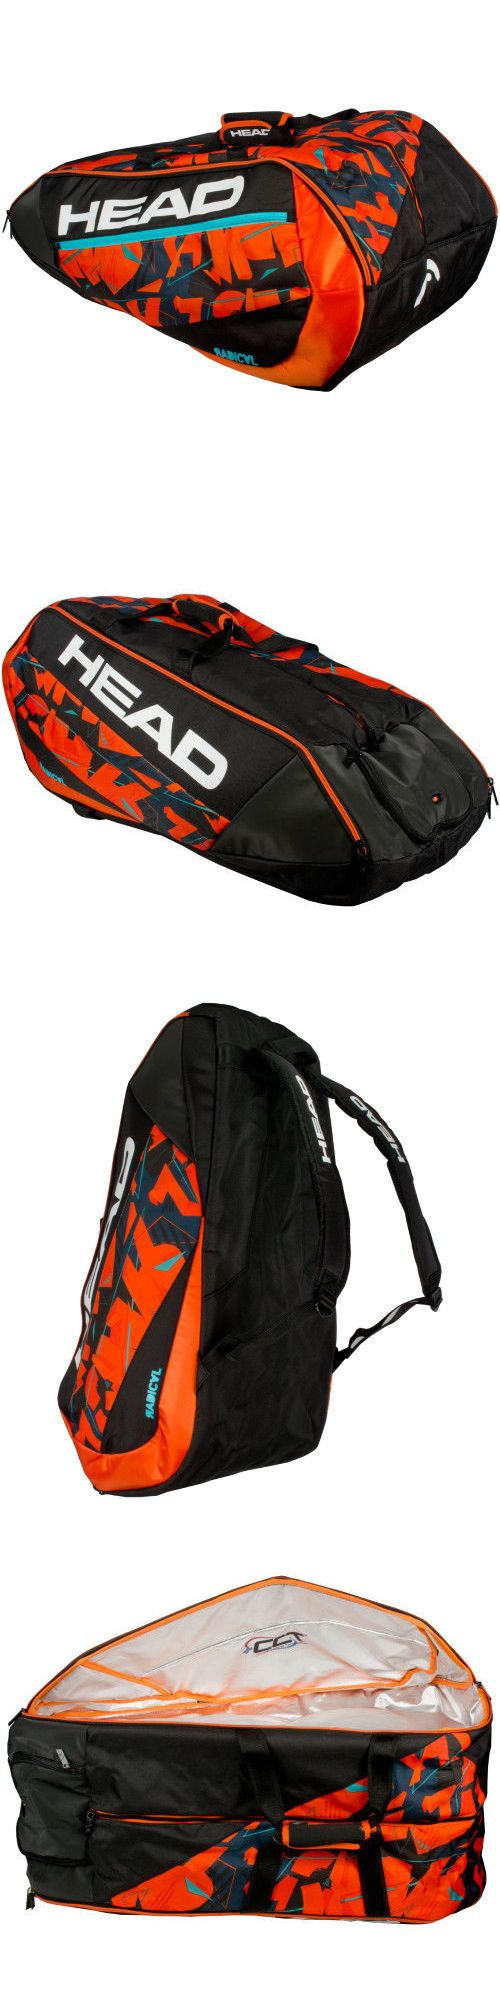 Other Tennis 2917: Head Radical 12 Racquet Monstercombi Tennis Bag 12R 2017 -> BUY IT NOW ONLY: $80 on eBay!